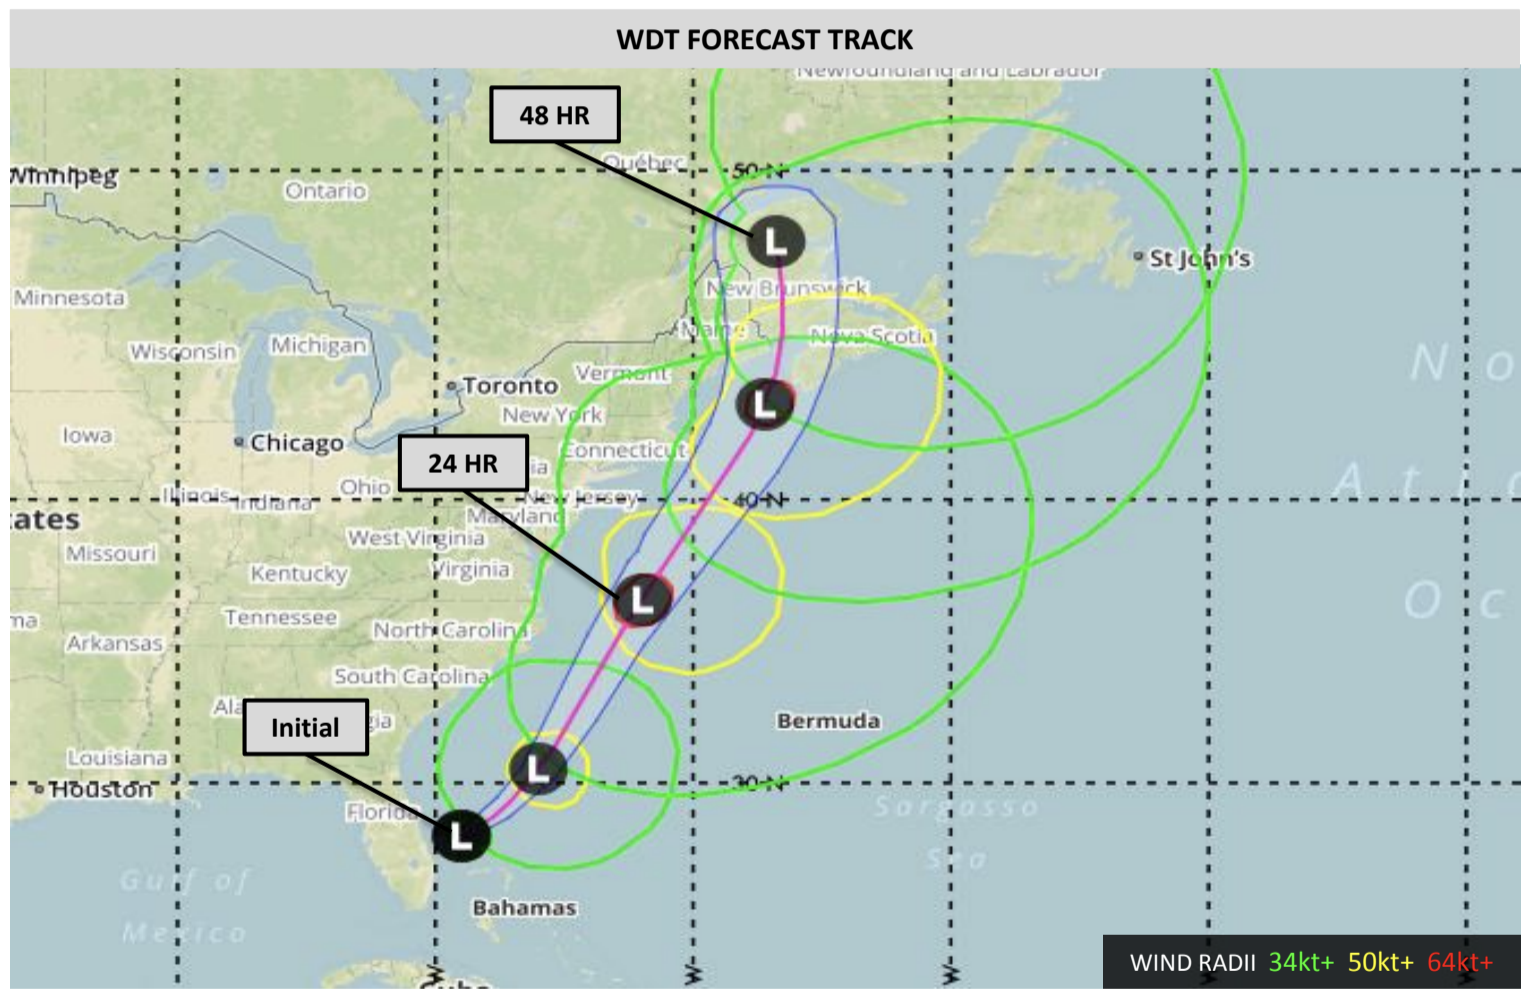 WDT Brings Safety to the Forefront with Nor'easter Advisories